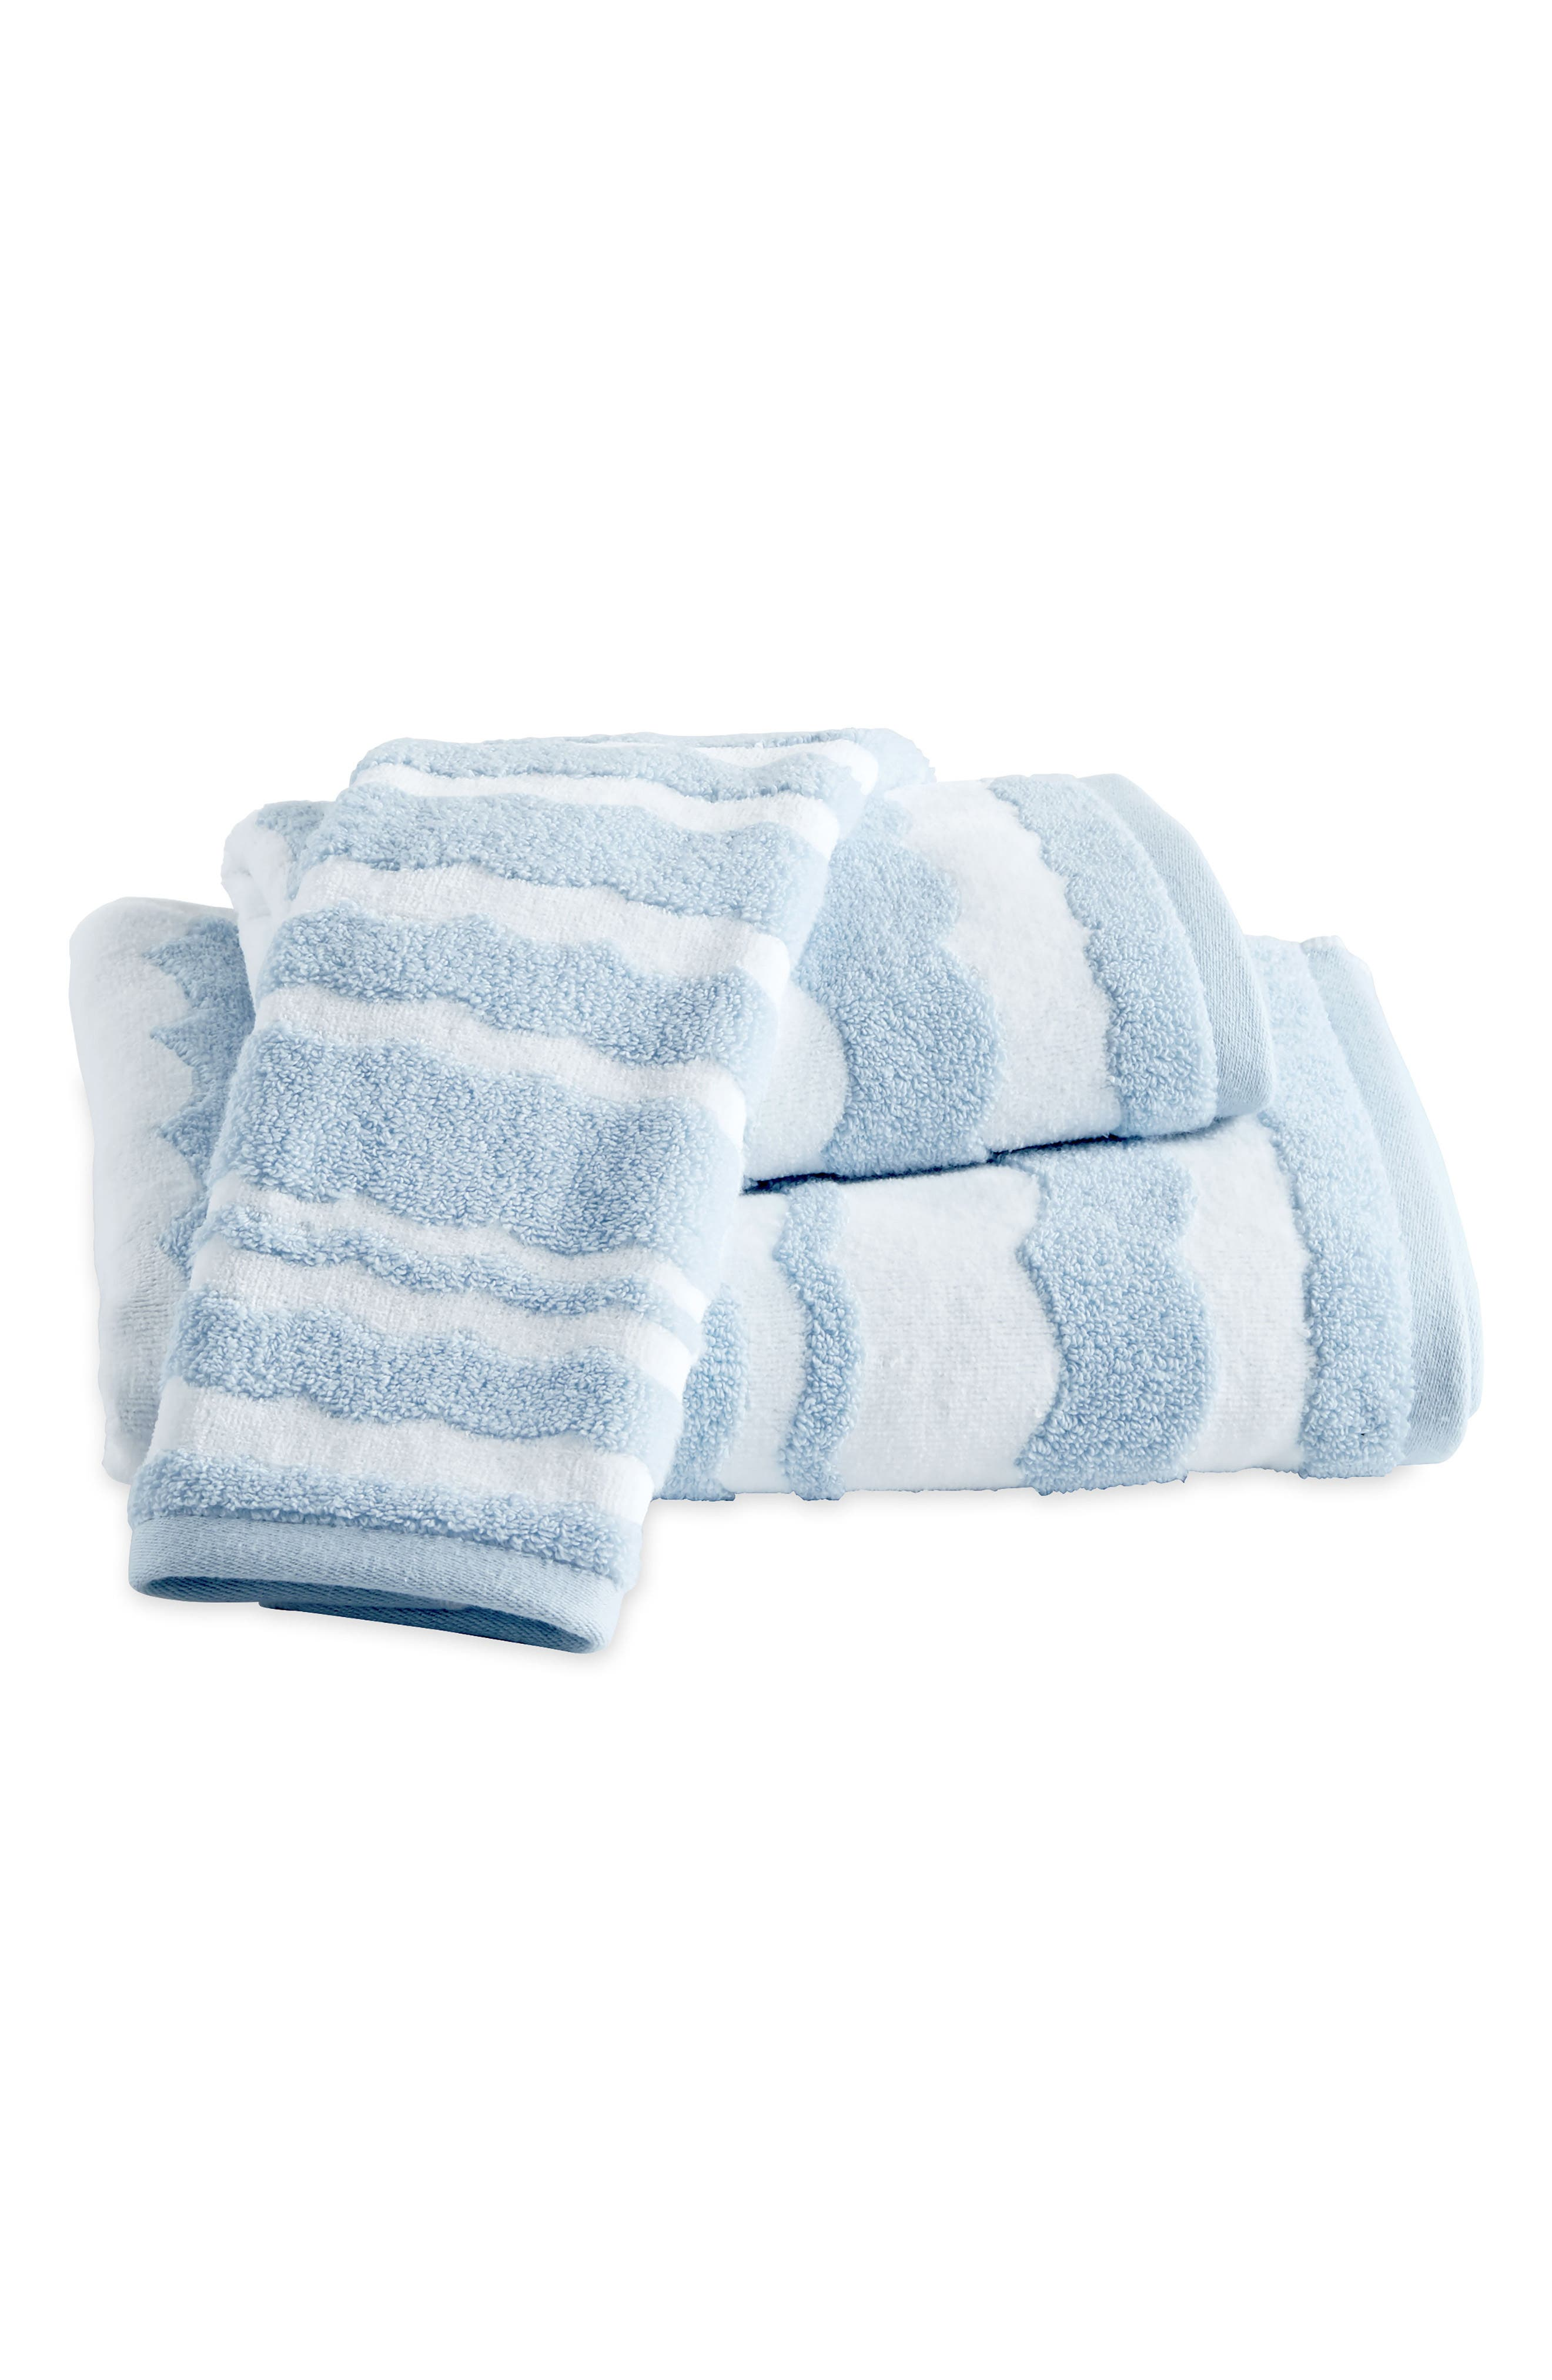 Destinations Wave Scallop Bath Towel, Hand Towel and Washcloth Set